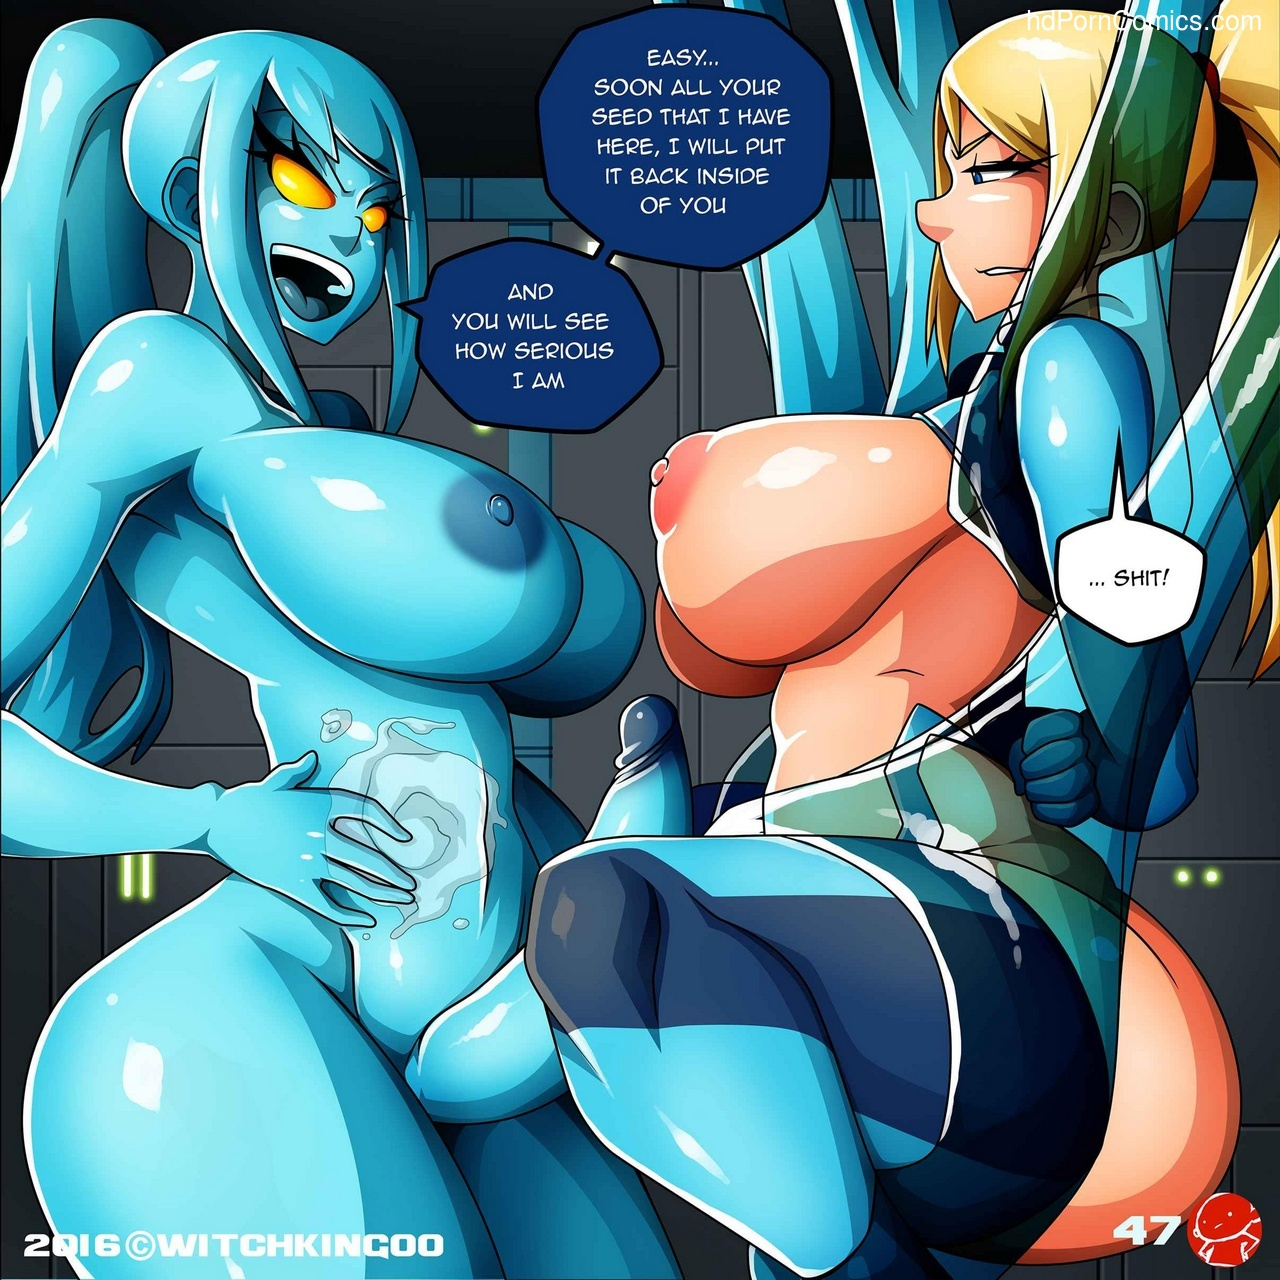 Sexy samus nude beach eventually necessary